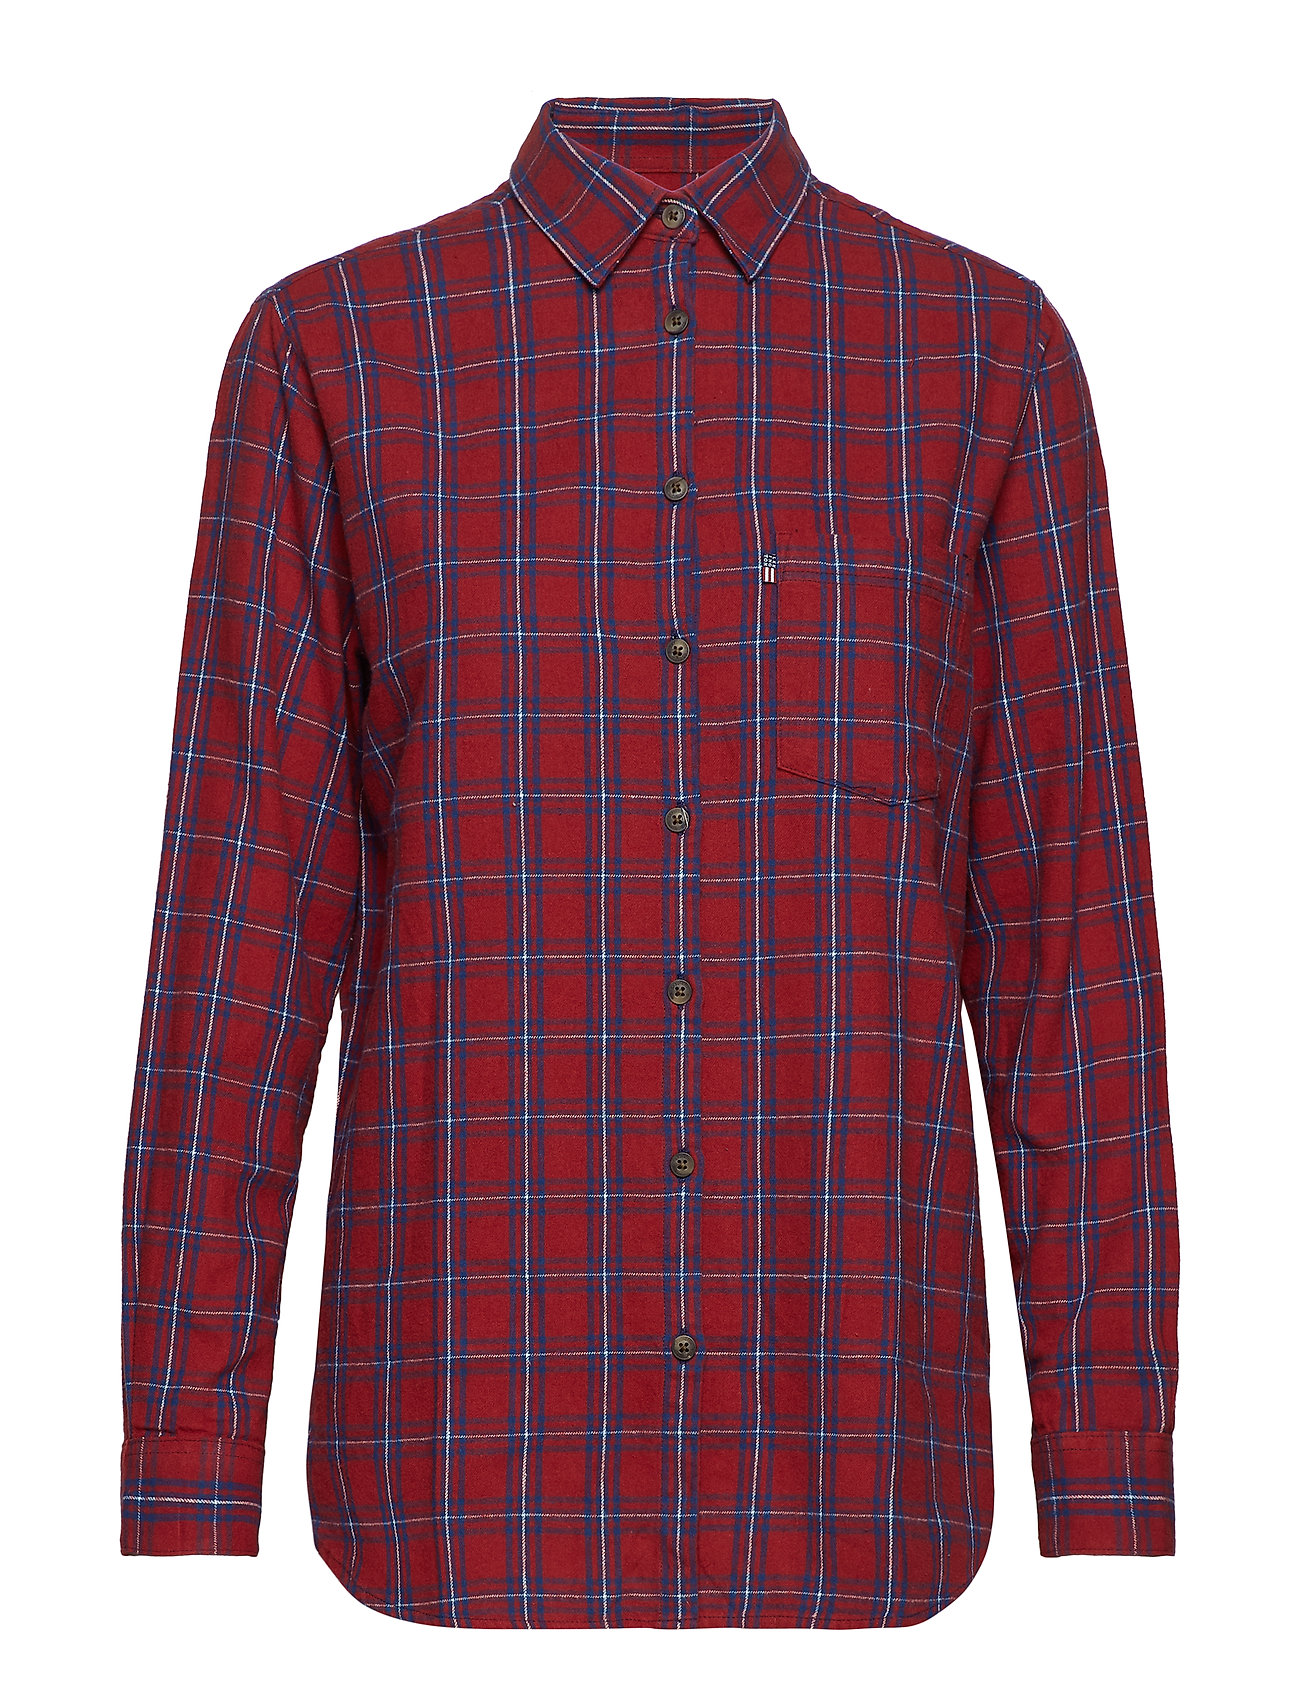 Lexington Clothing Isa Flannel Shirt Ögrönlar